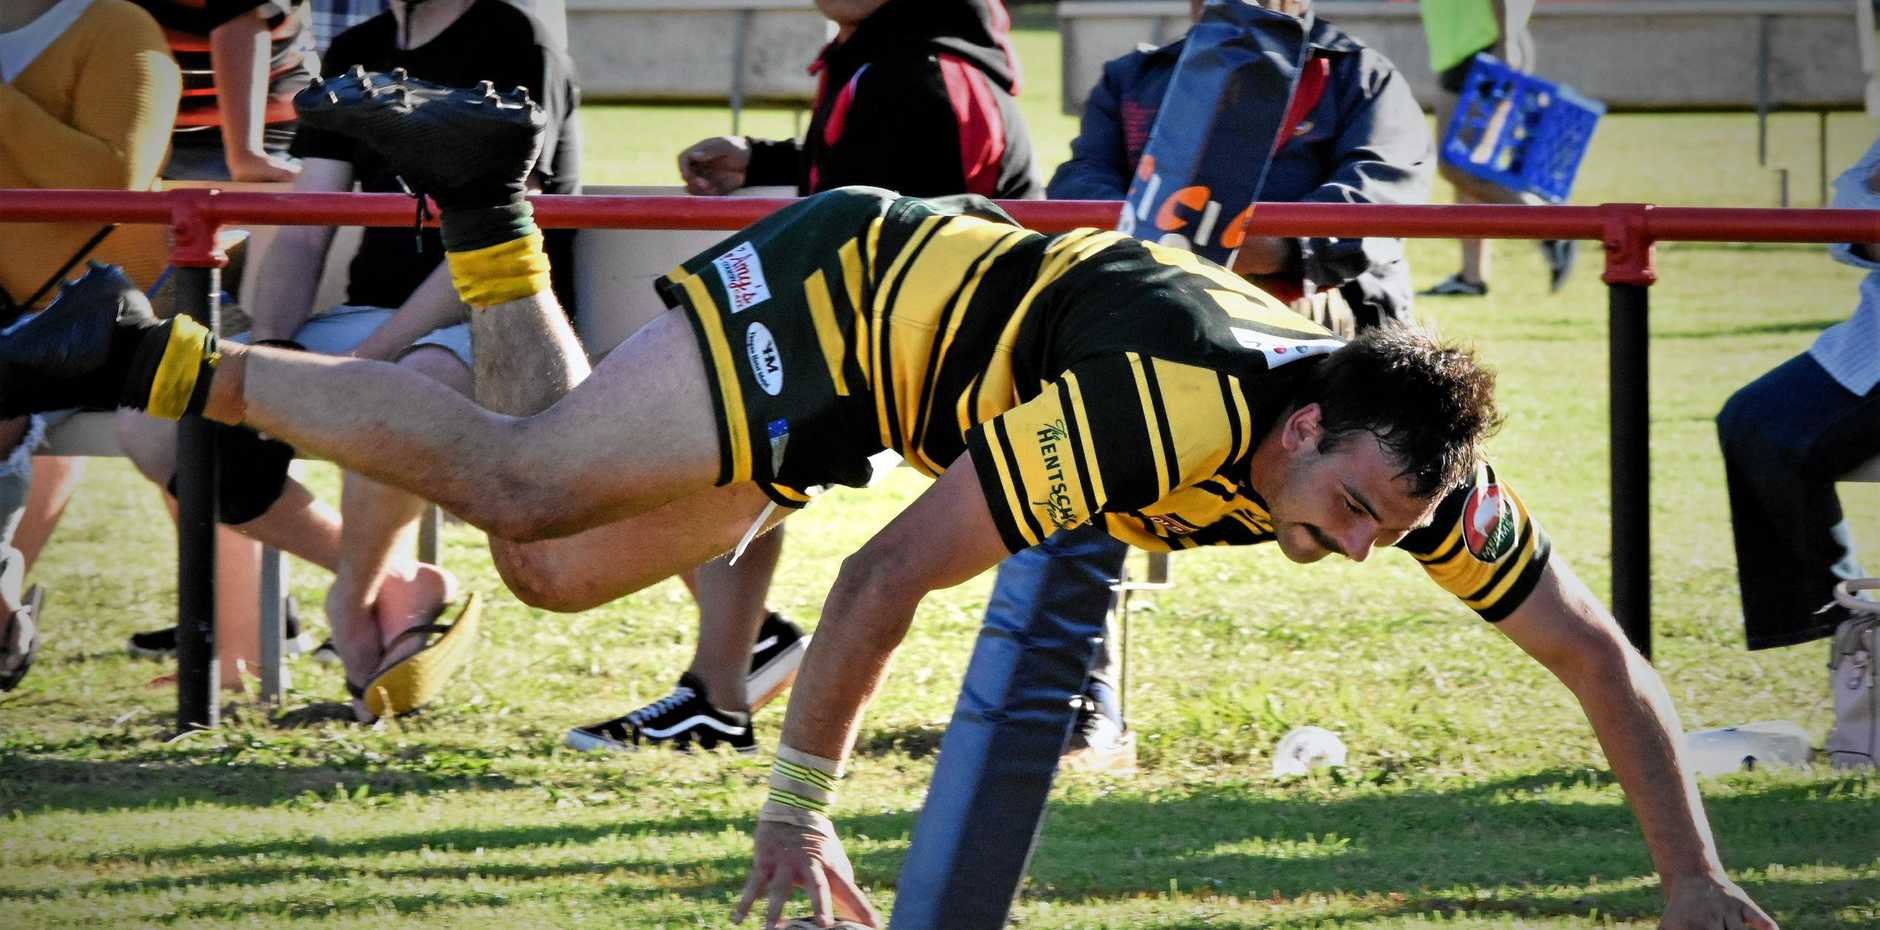 Braydon Wilson scored three tries for Wattles on Sunday against Valleys.